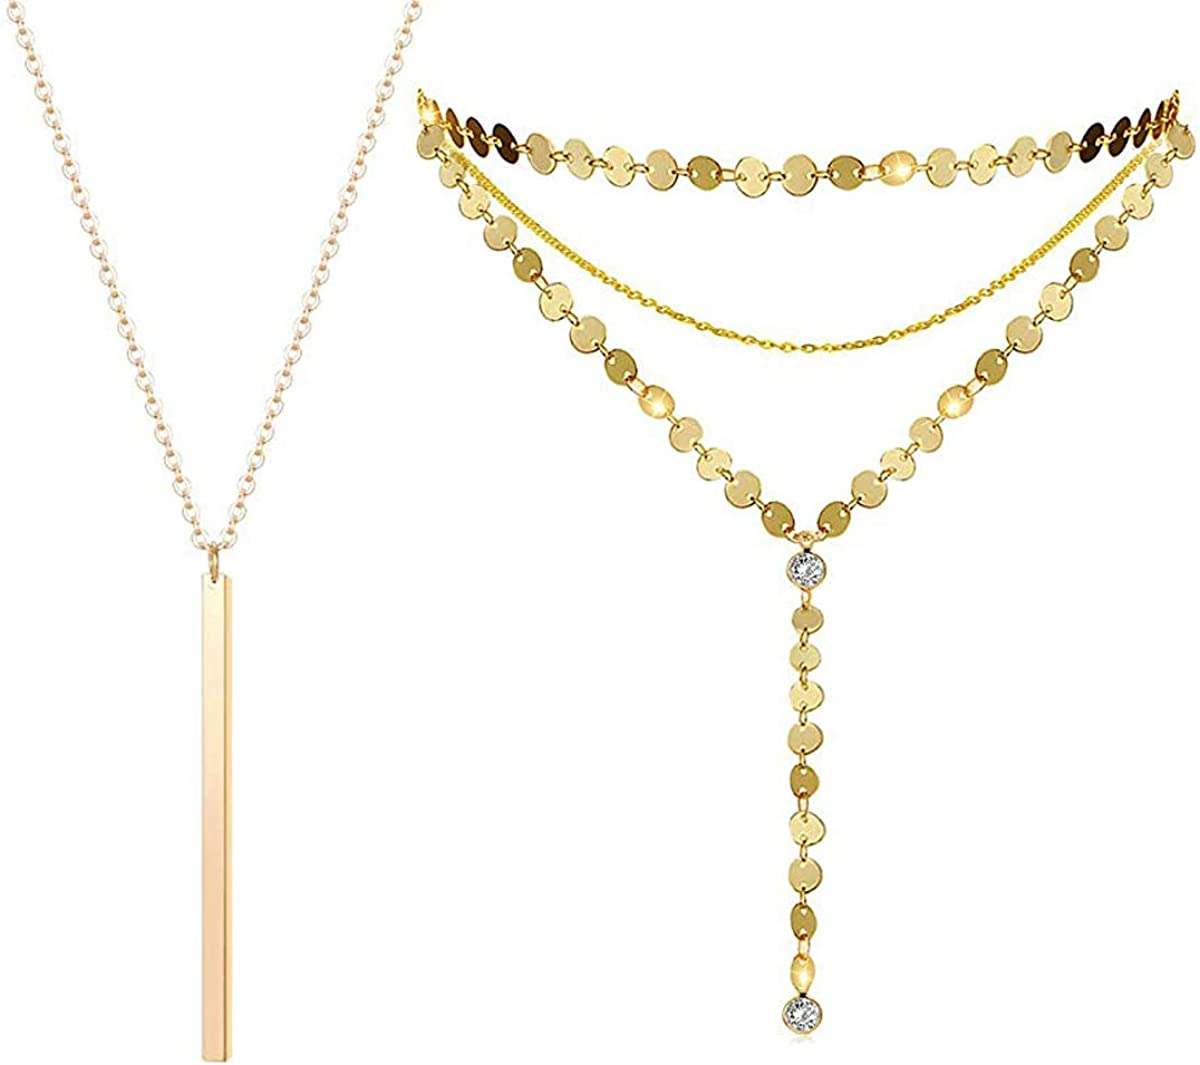 Dolovely Gold Y Layered Sequins Disc Choker Necklace Bar Pendant Thin Long Chain Necklace for Women Jewelry